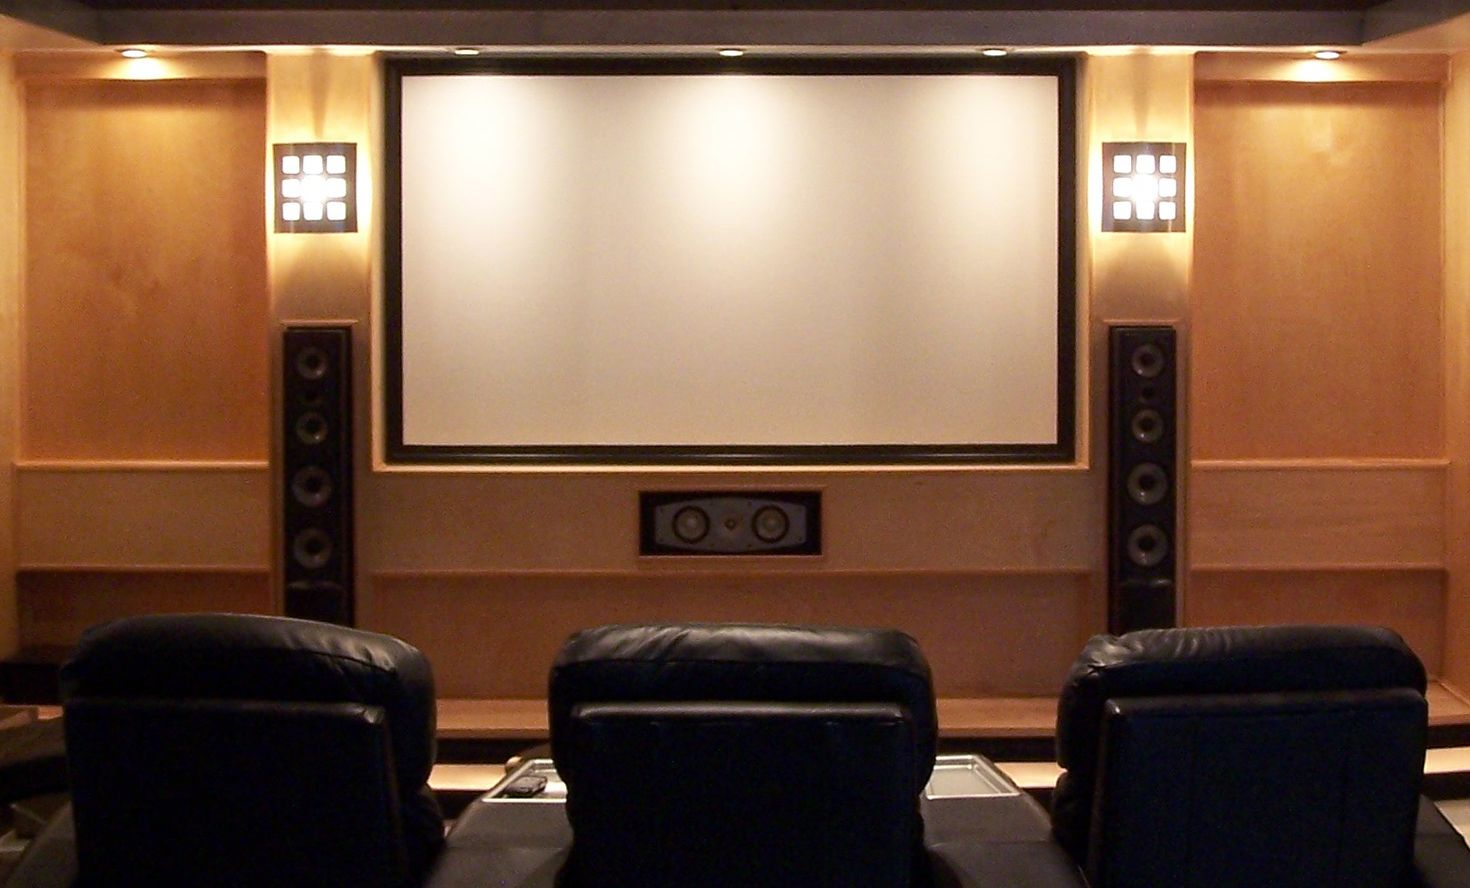 15 Awesome Basement Home Theater Cinema Room Ideas Entertainment Diy Wiring Make For Your Own Tag 2017 Designs